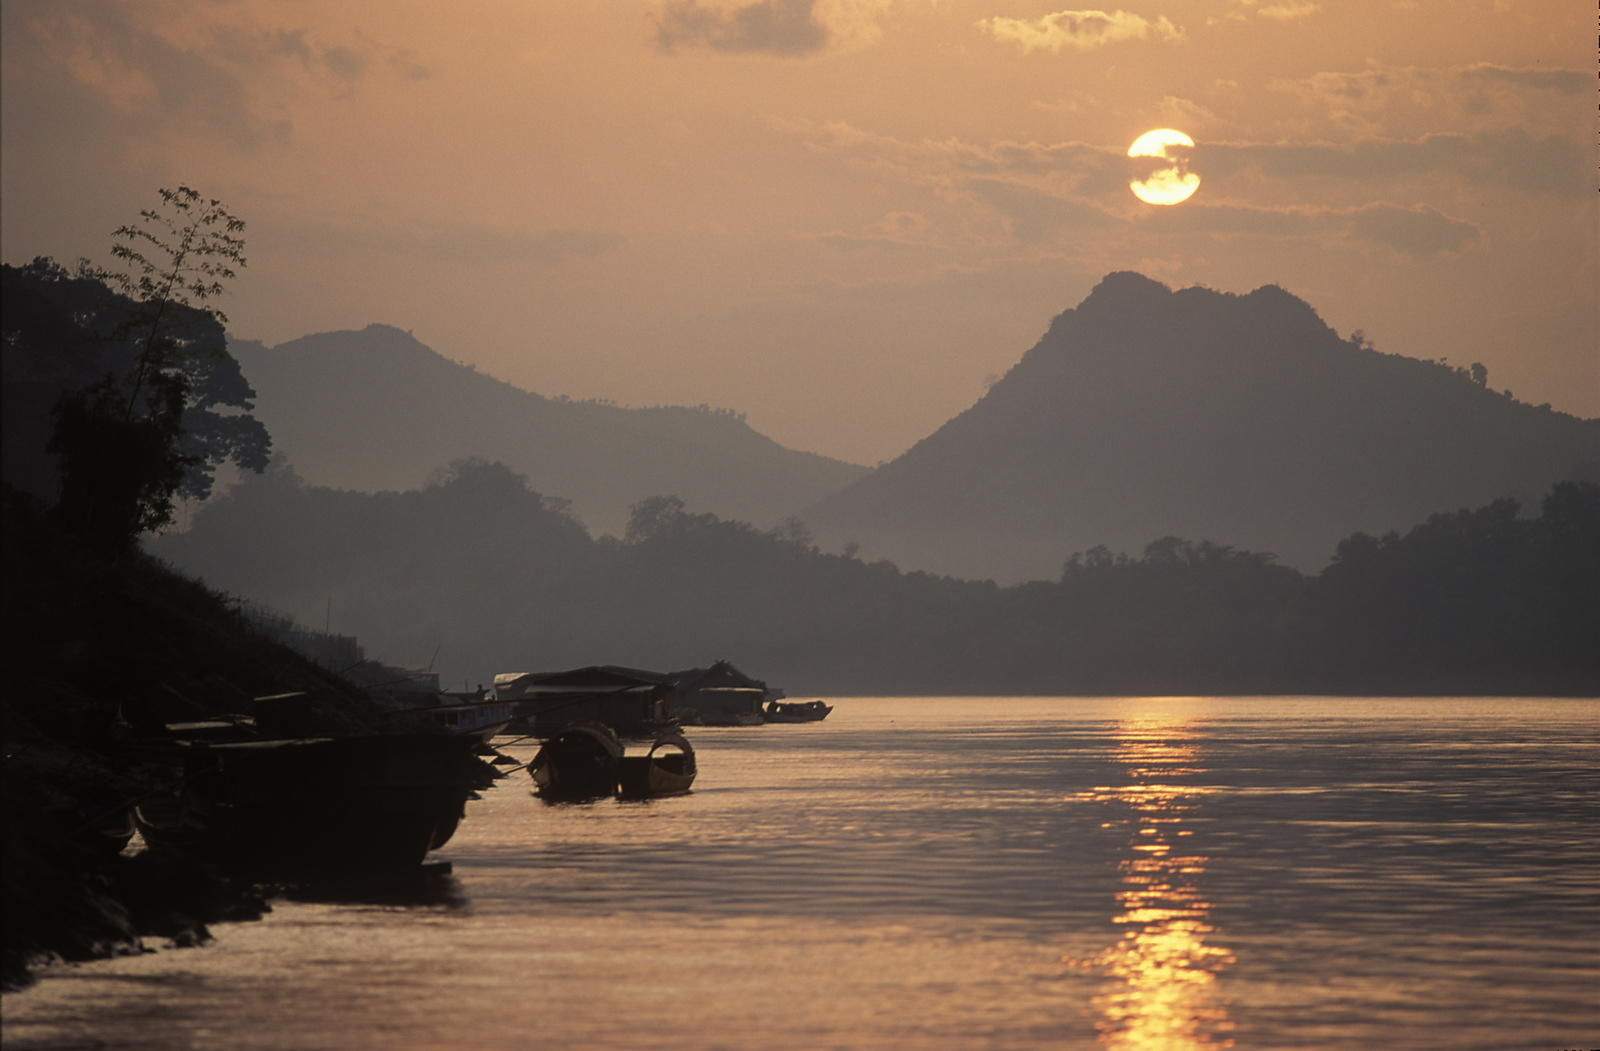 Mekong River